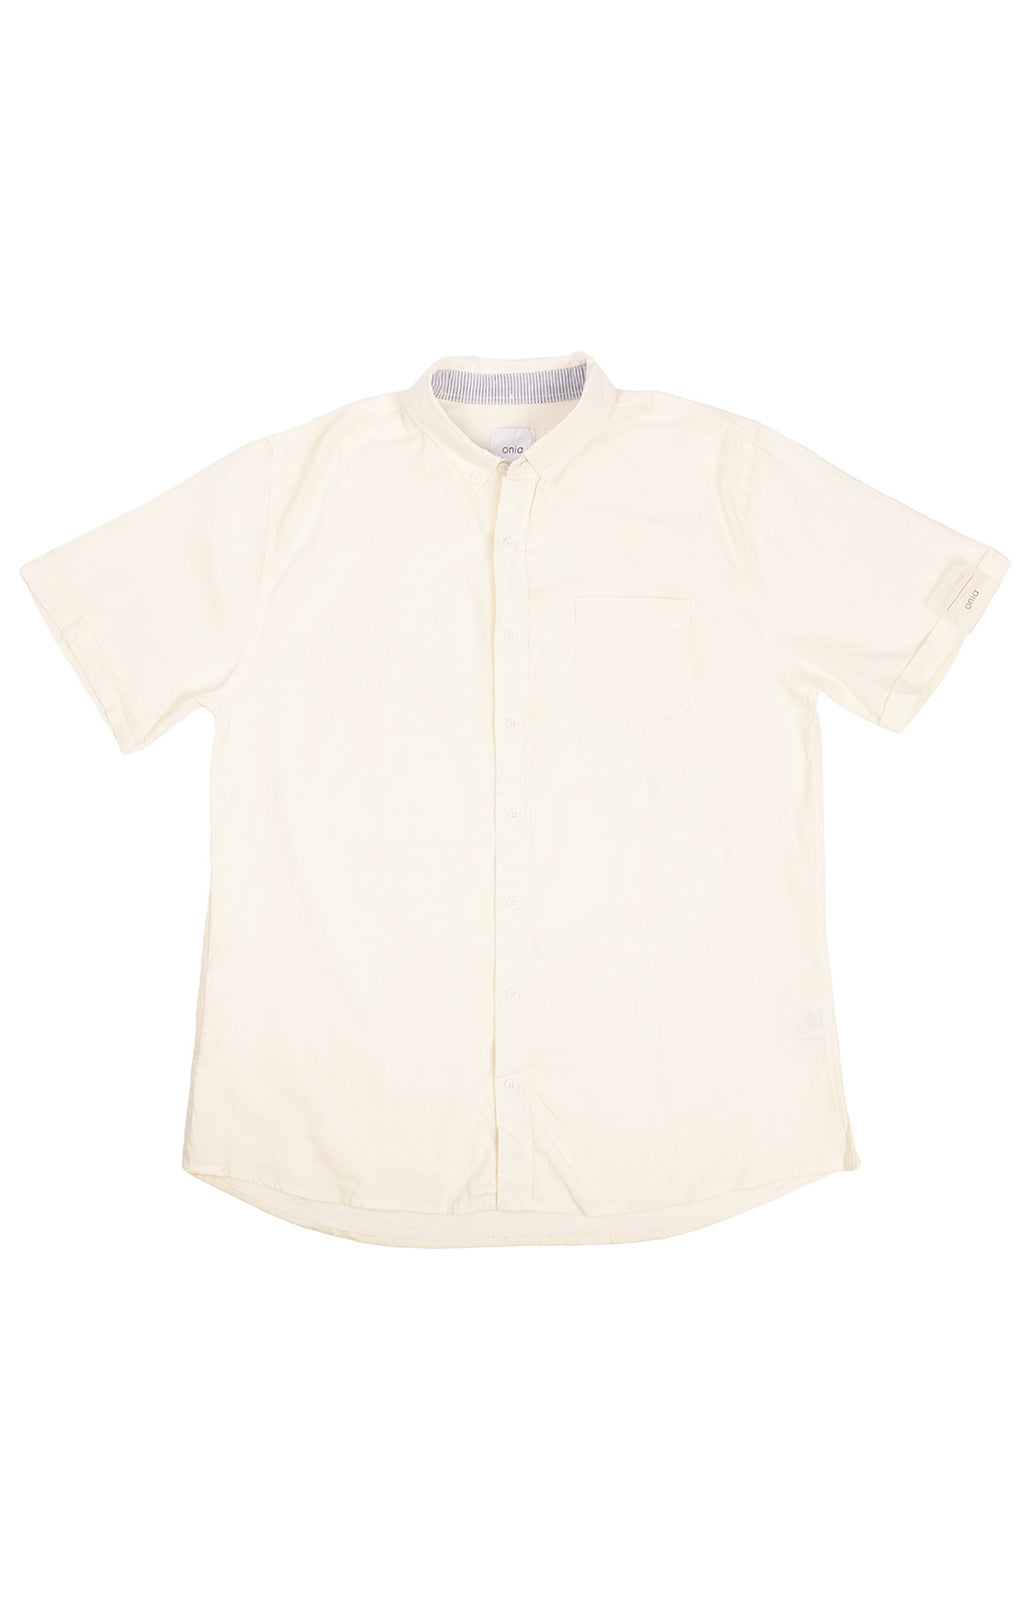 White Shirt sleeve button down shirt